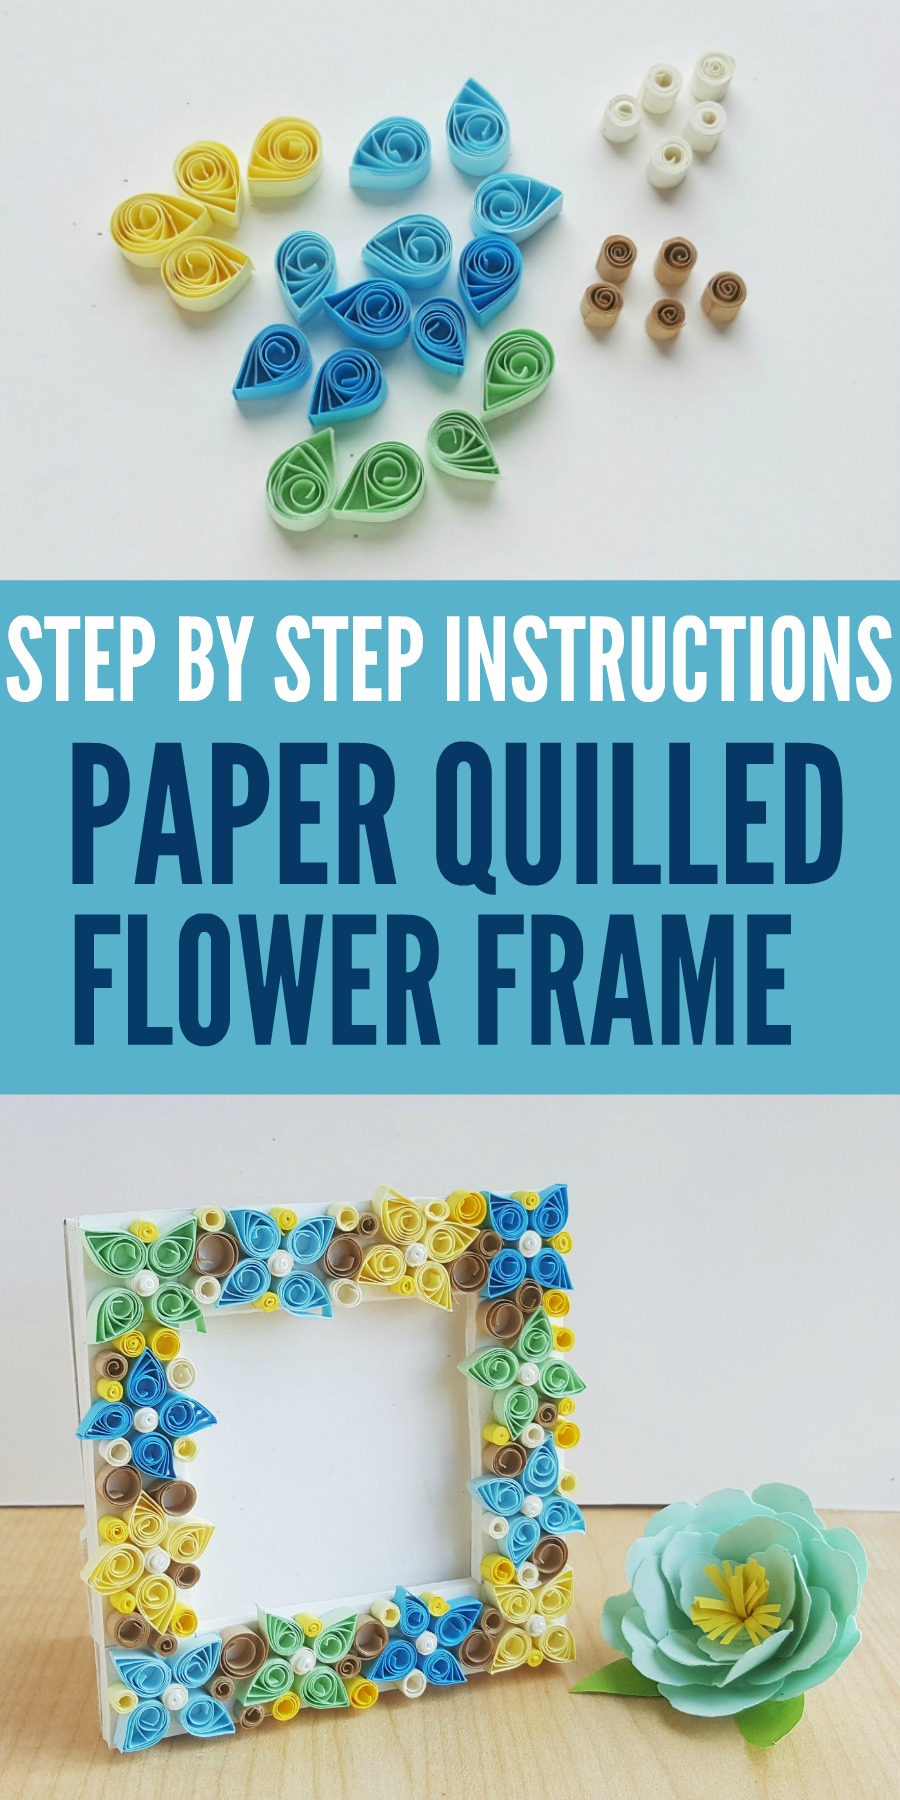 Paper Quilling Flower Frame Diy Step By Step Instructions